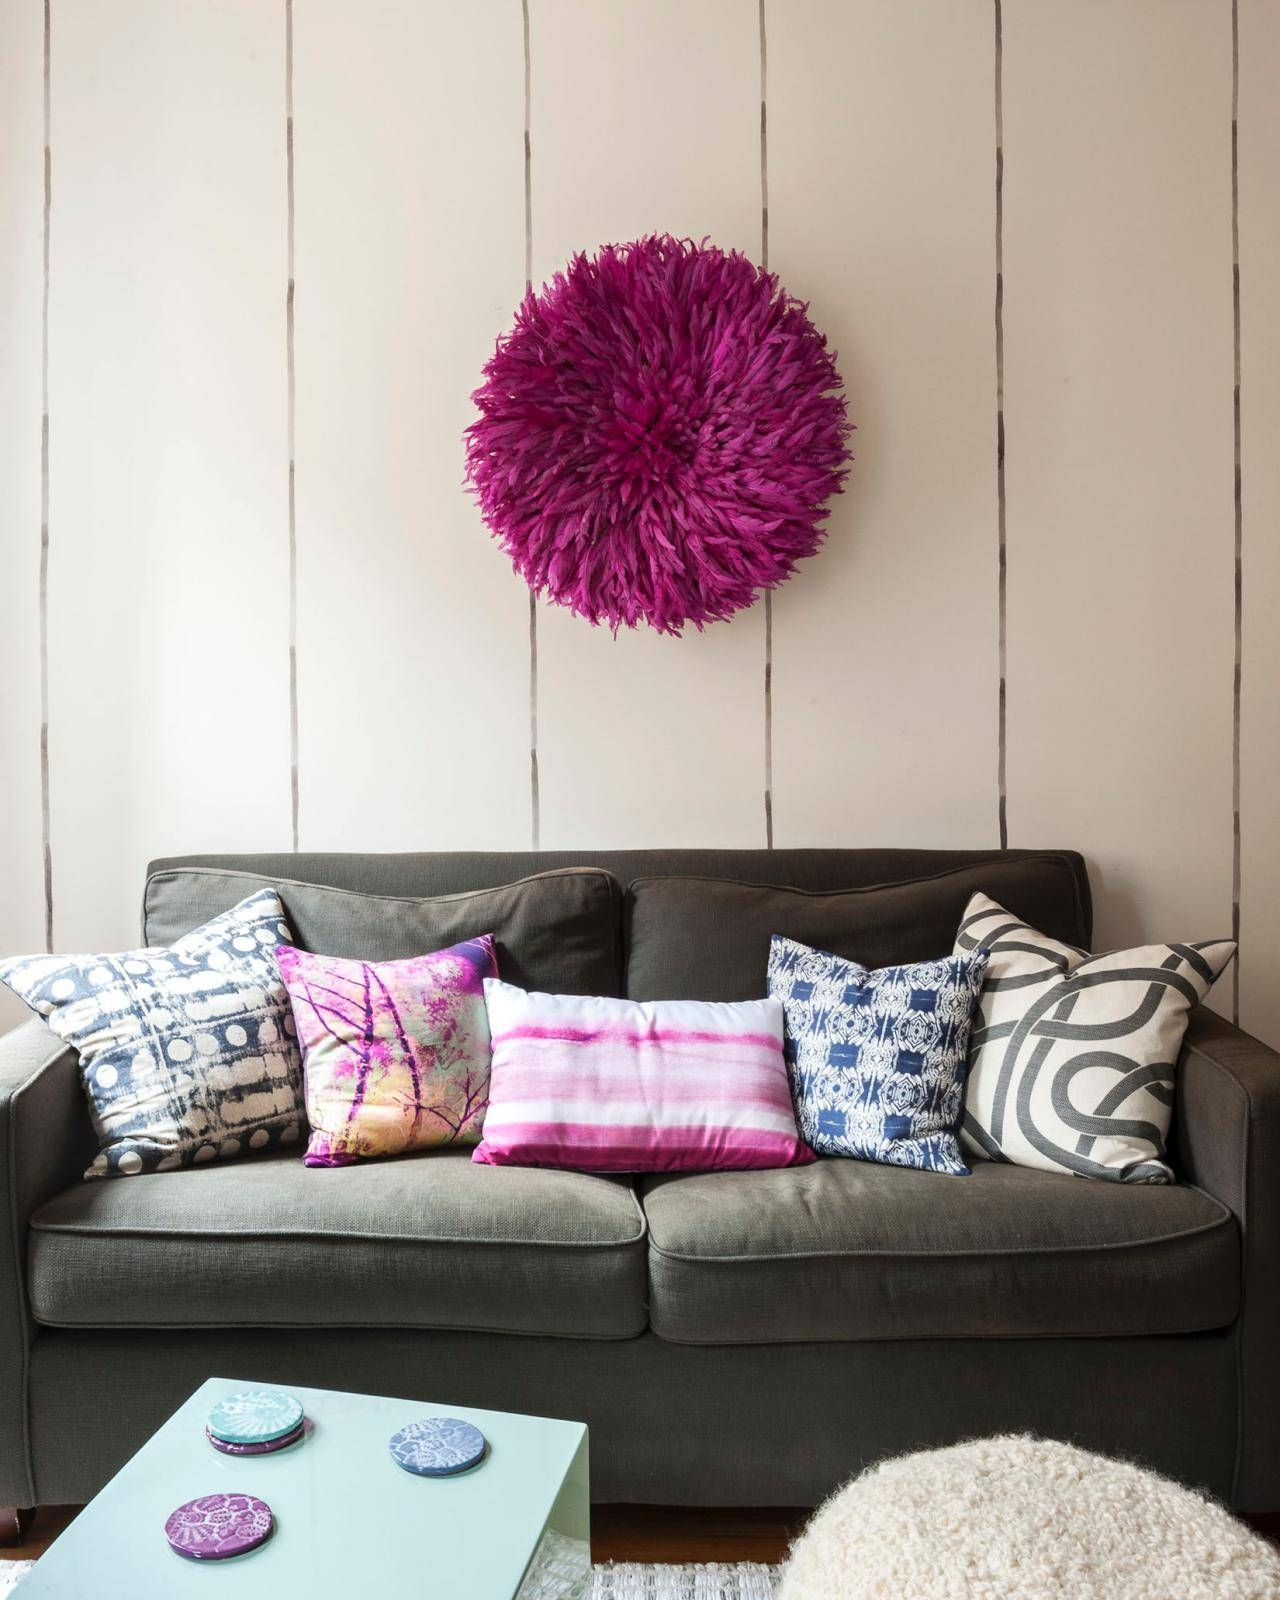 5 Apartment Sized Sofas That Are Lifesavers | Hgtv's Decorating Within 68 Inch Sofas (Photo 12 of 30)